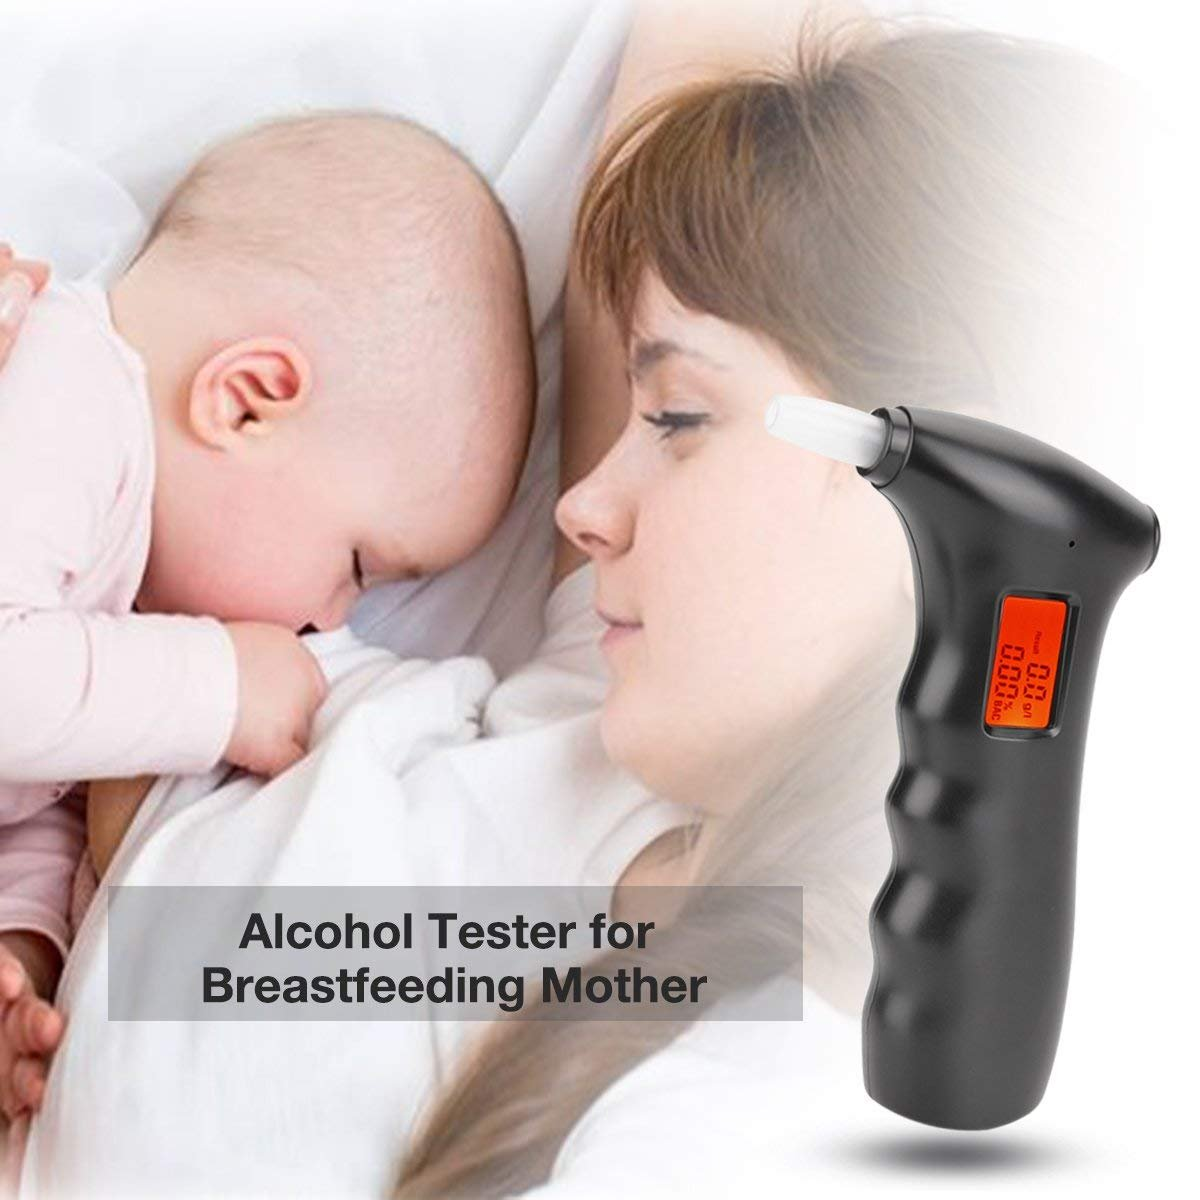 bedee Alcohol Breathaliser Breathalyzer Kit Alcohol Breath Tester Digital Breath Alcohol Level Meter Portable Professional Alcohol Tester Large LCD Display with 5 Mouthpieces